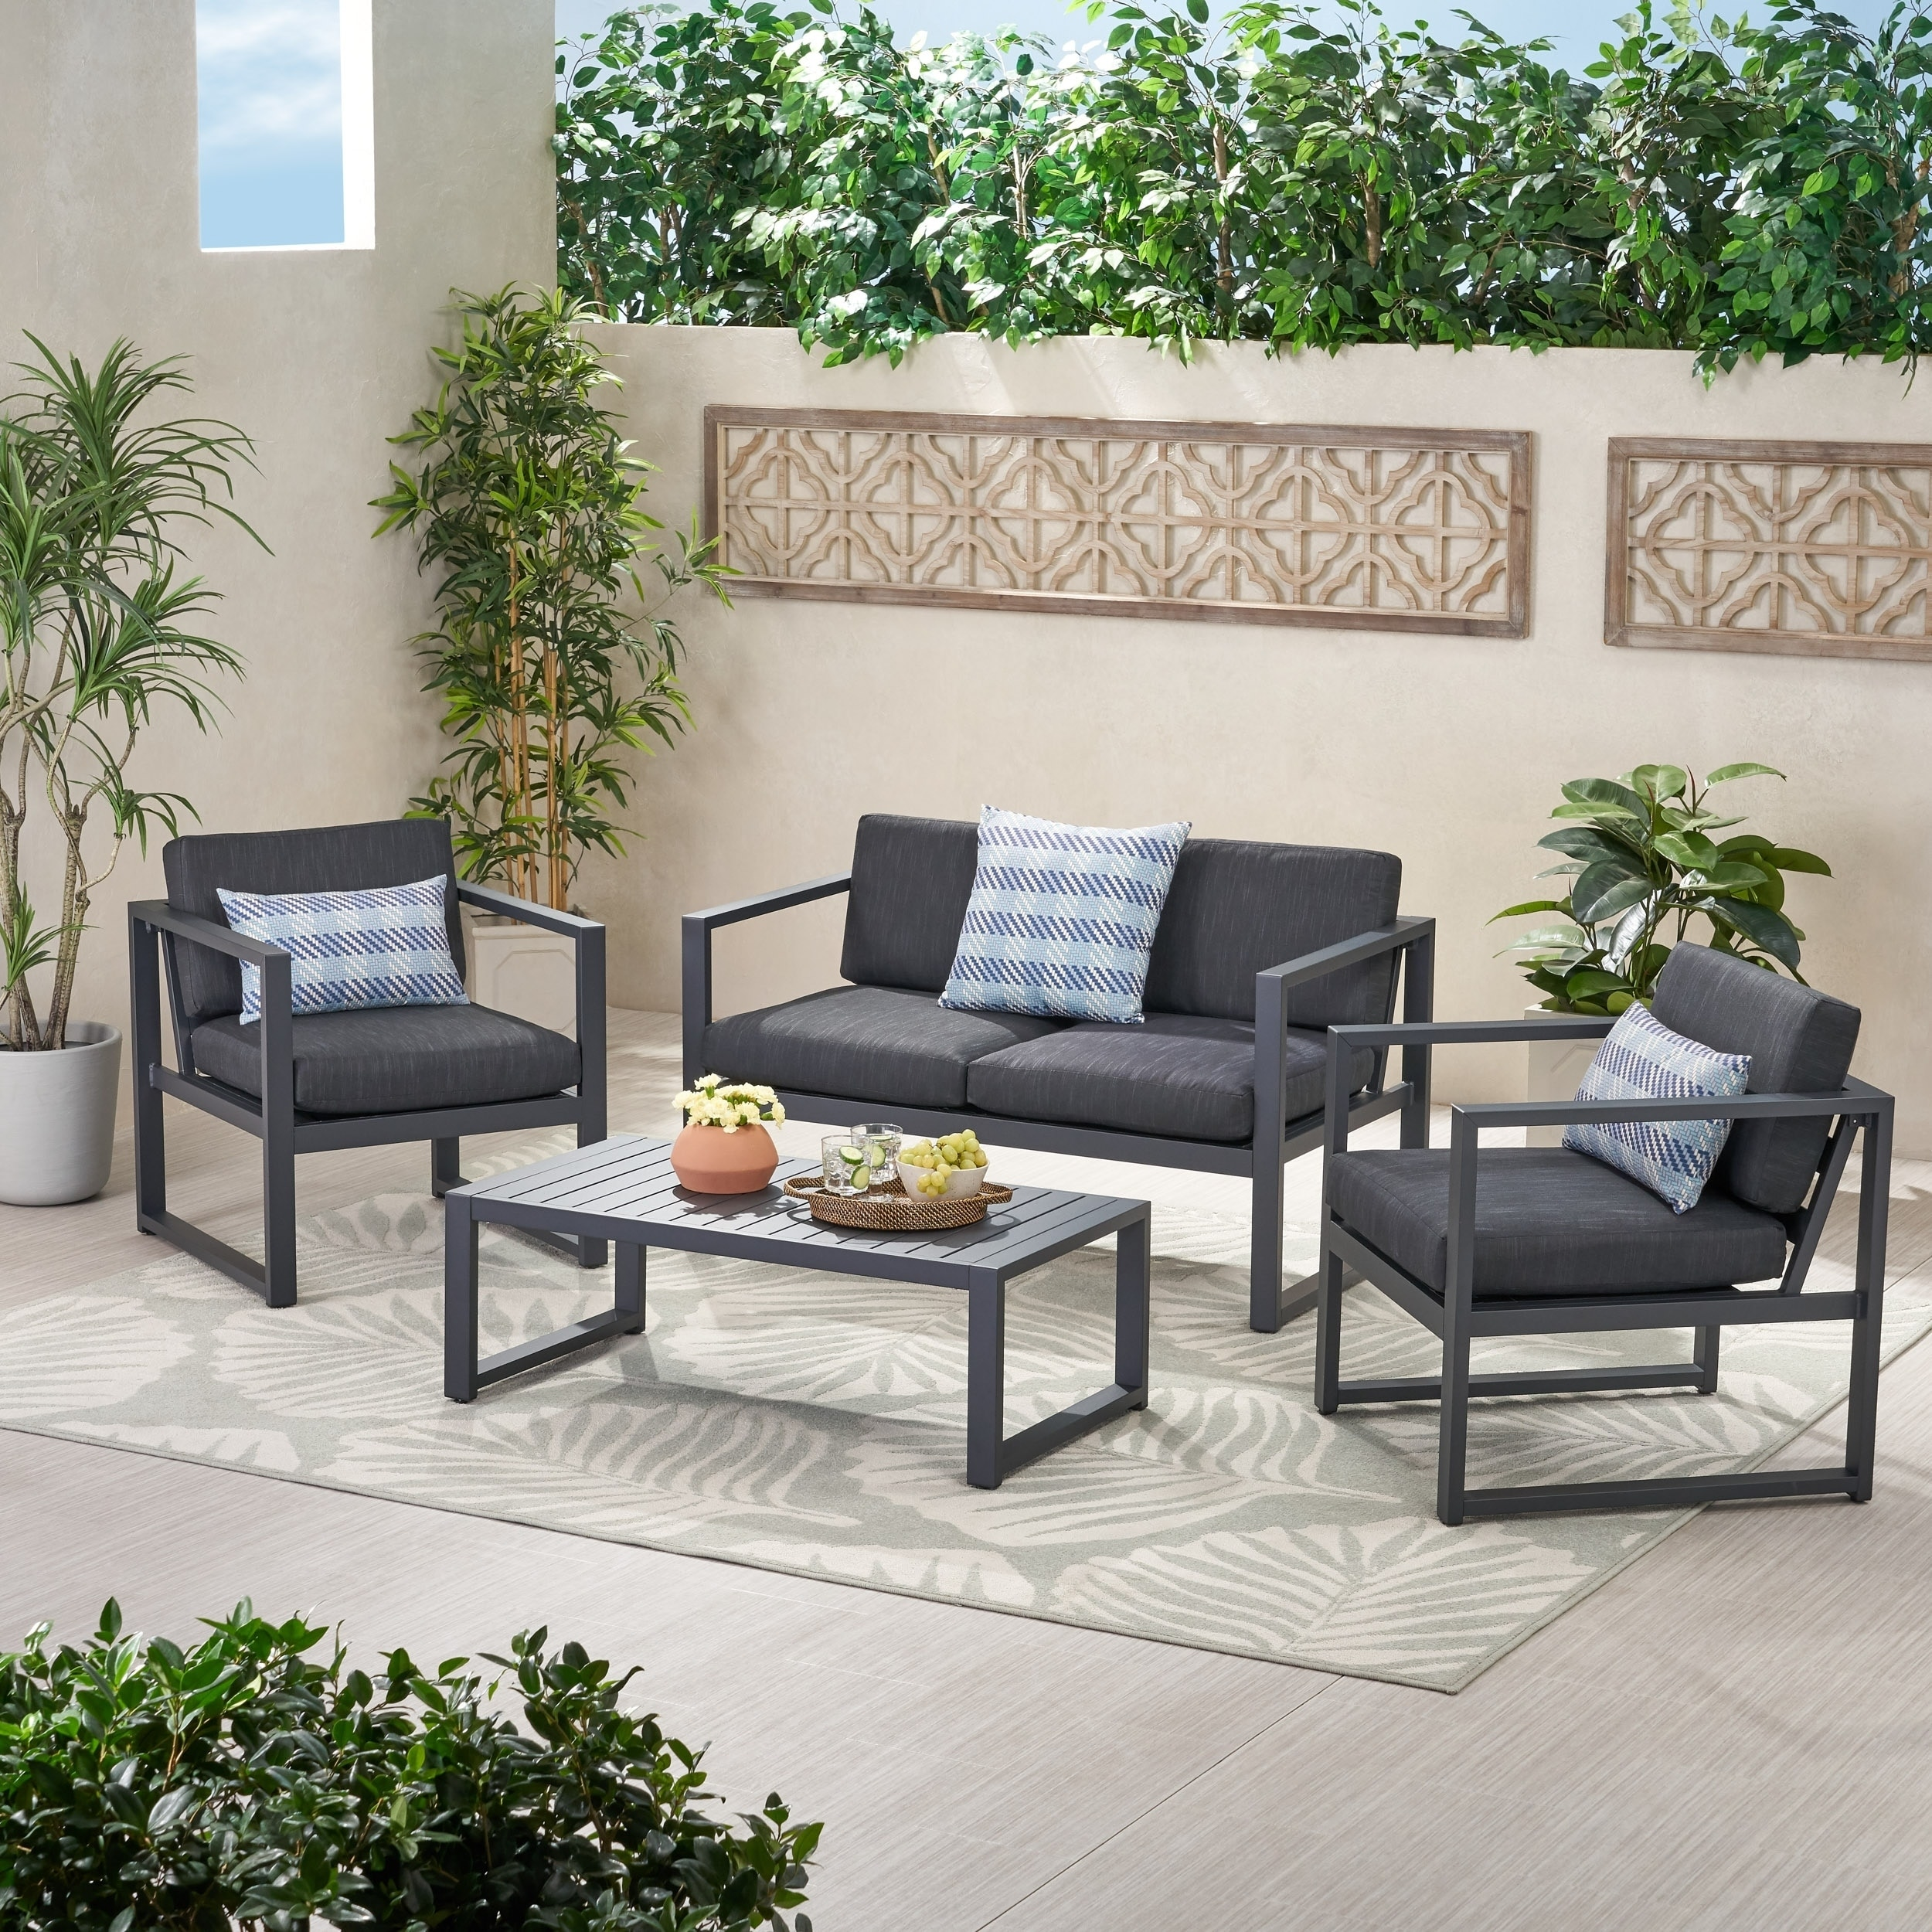 Patio Table Patio Furniture Find Great Outdoor Seating Dining Deals